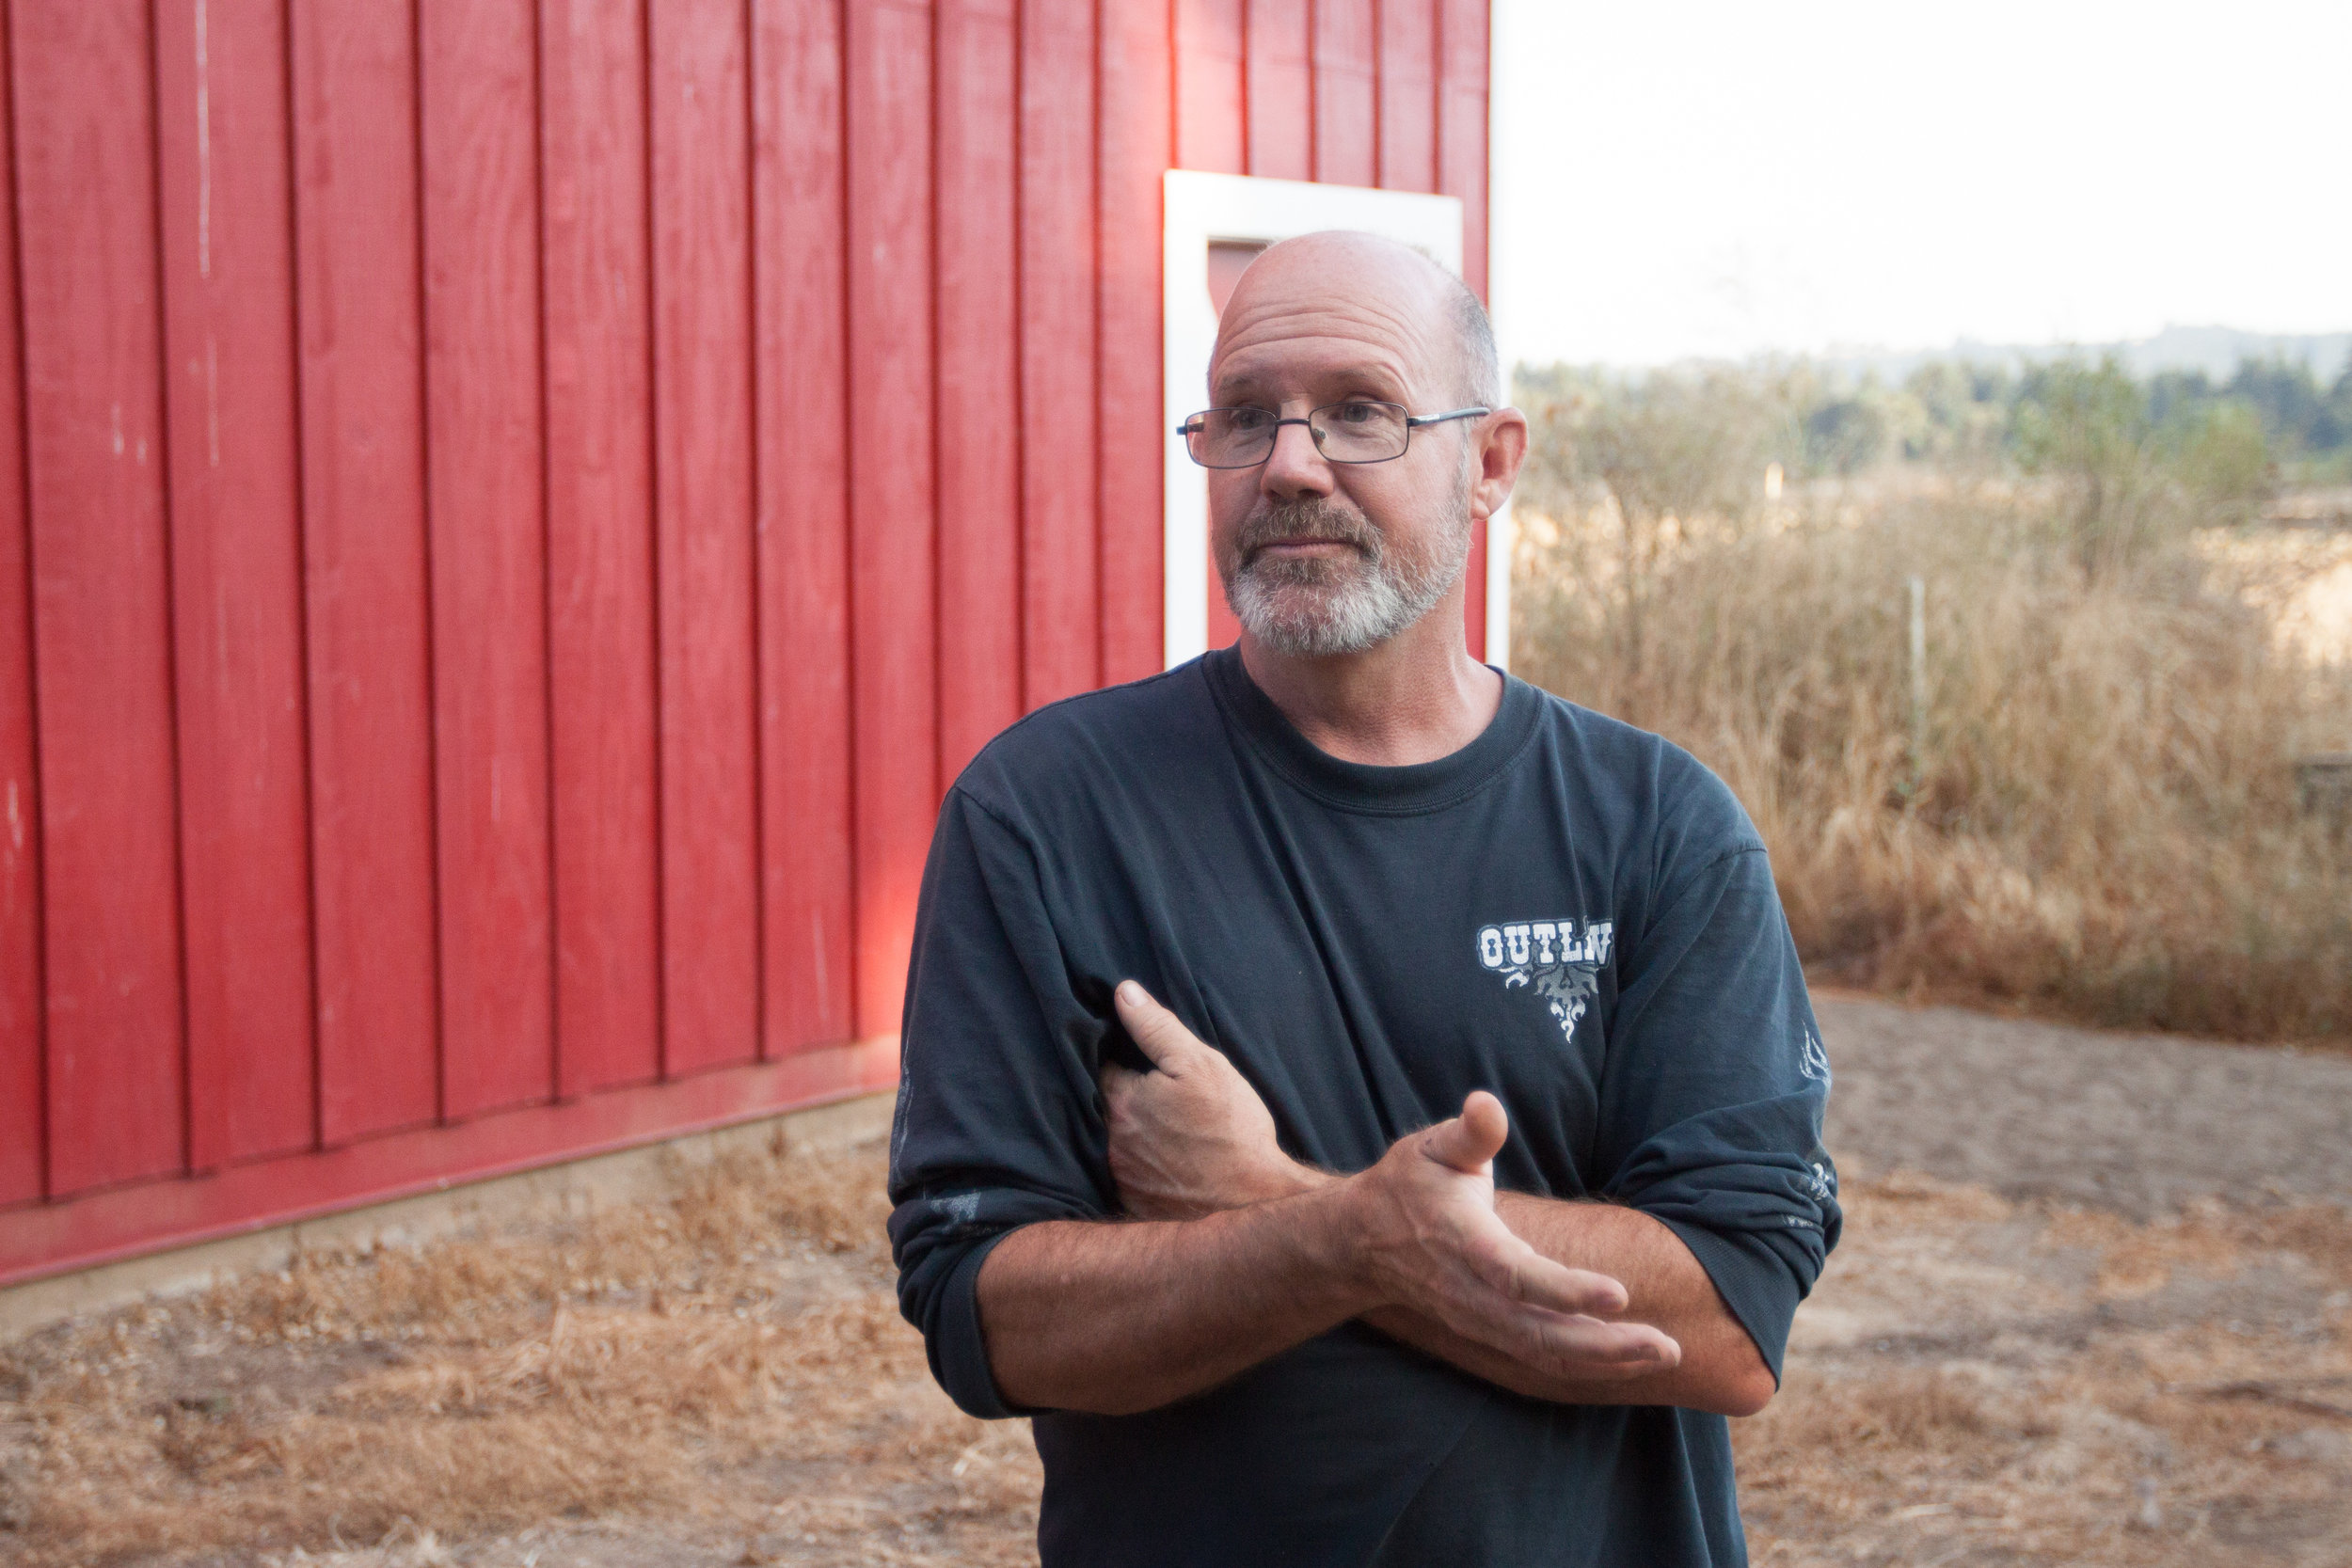 Michael O'Loughlin, owner and operator on the farm standing near his barn built in 1937.